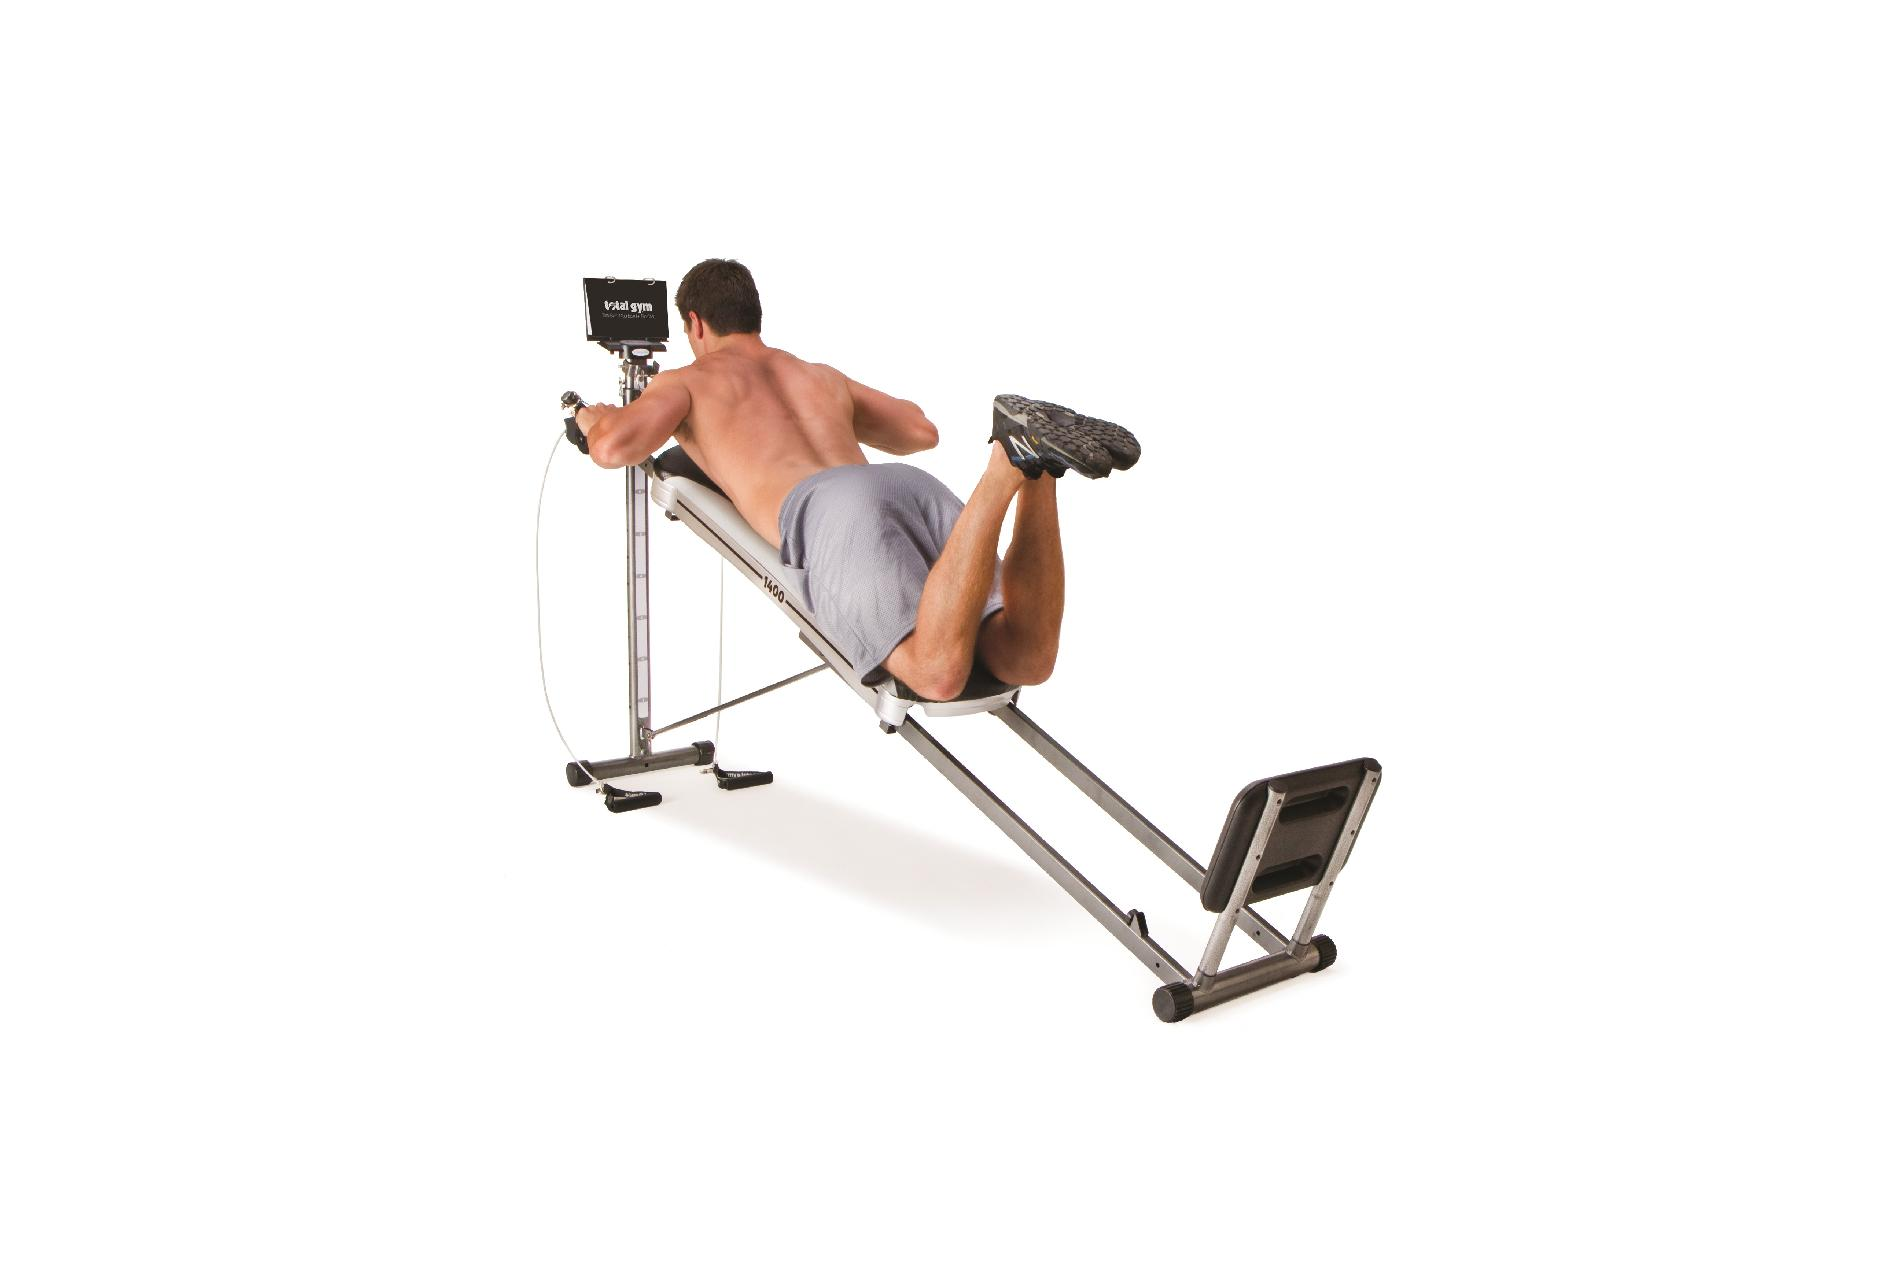 Total Fitness Total Gym 1400 Exercise System for Toning and Strengthening